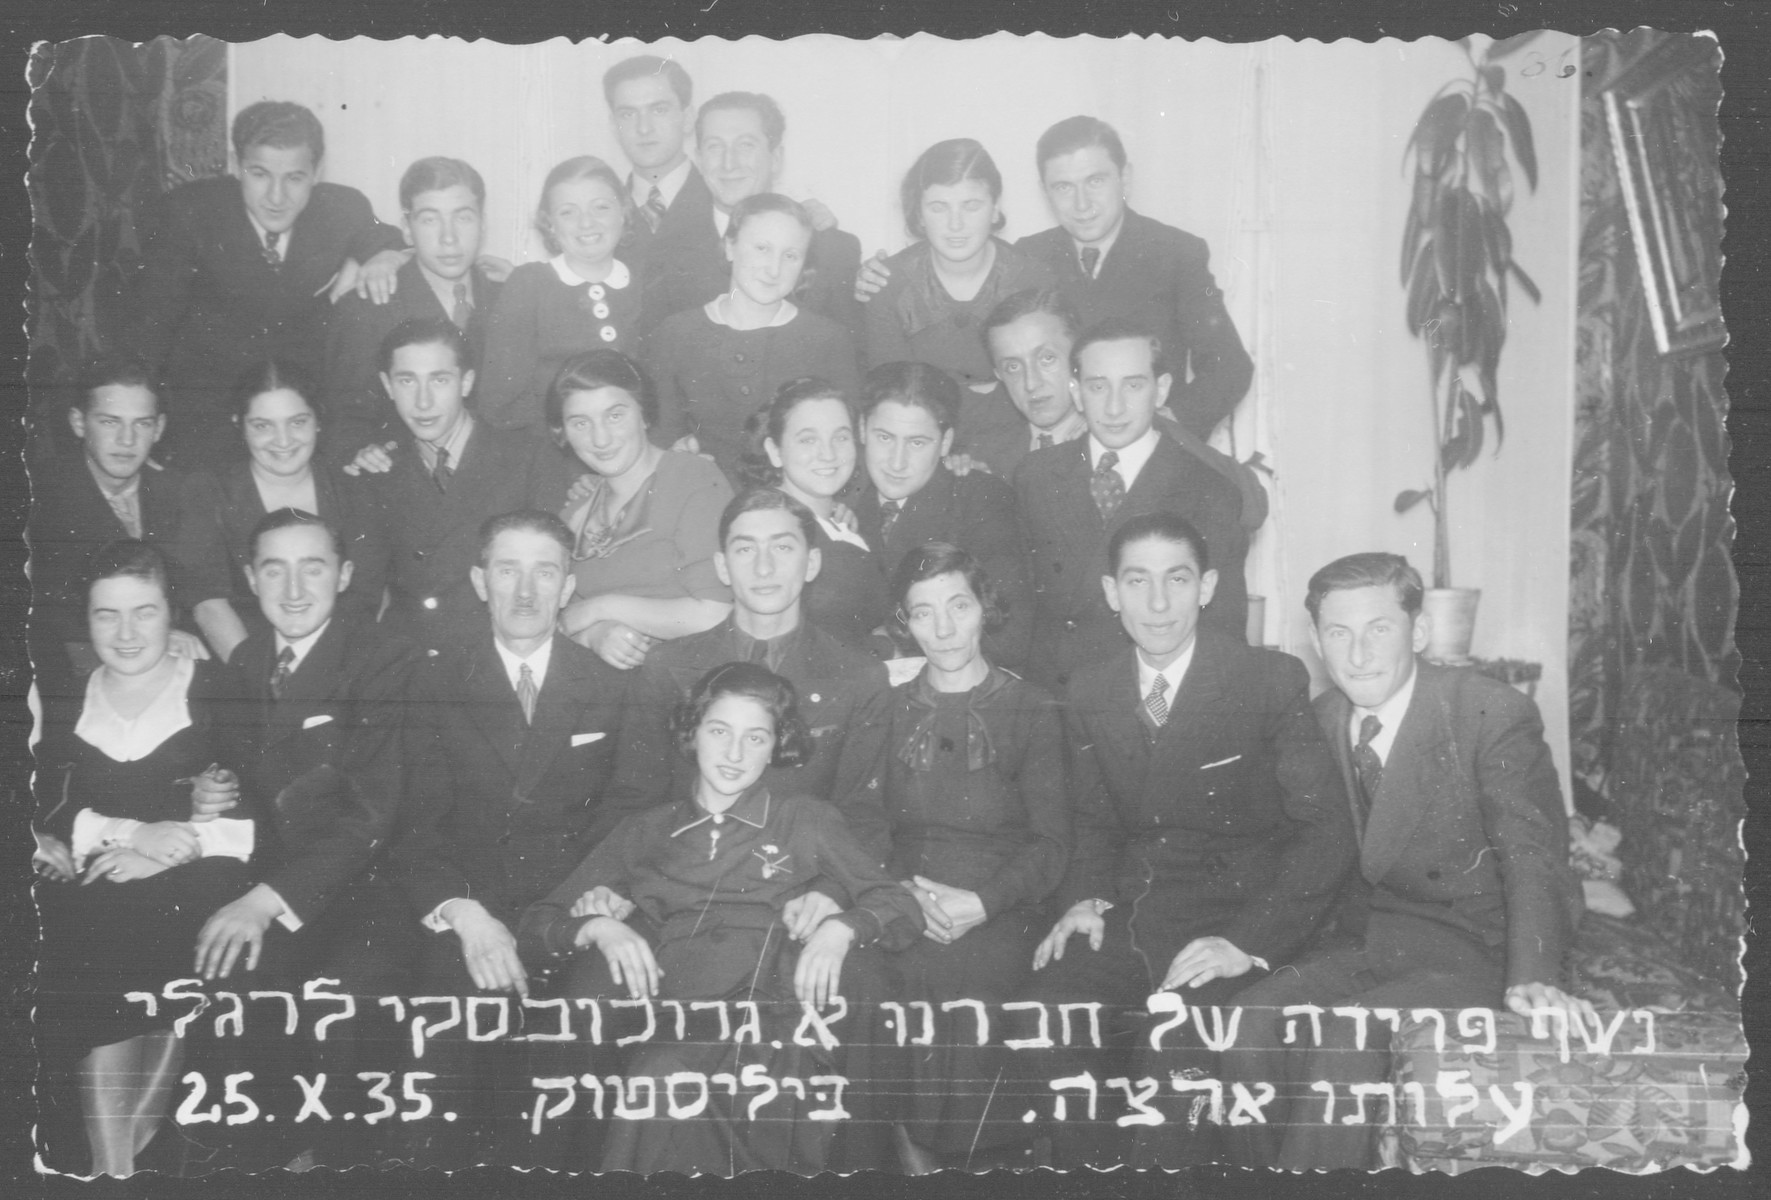 Friends gather to bid farewell to A. Grochowska (brother of the donor) before he left for Palestine.